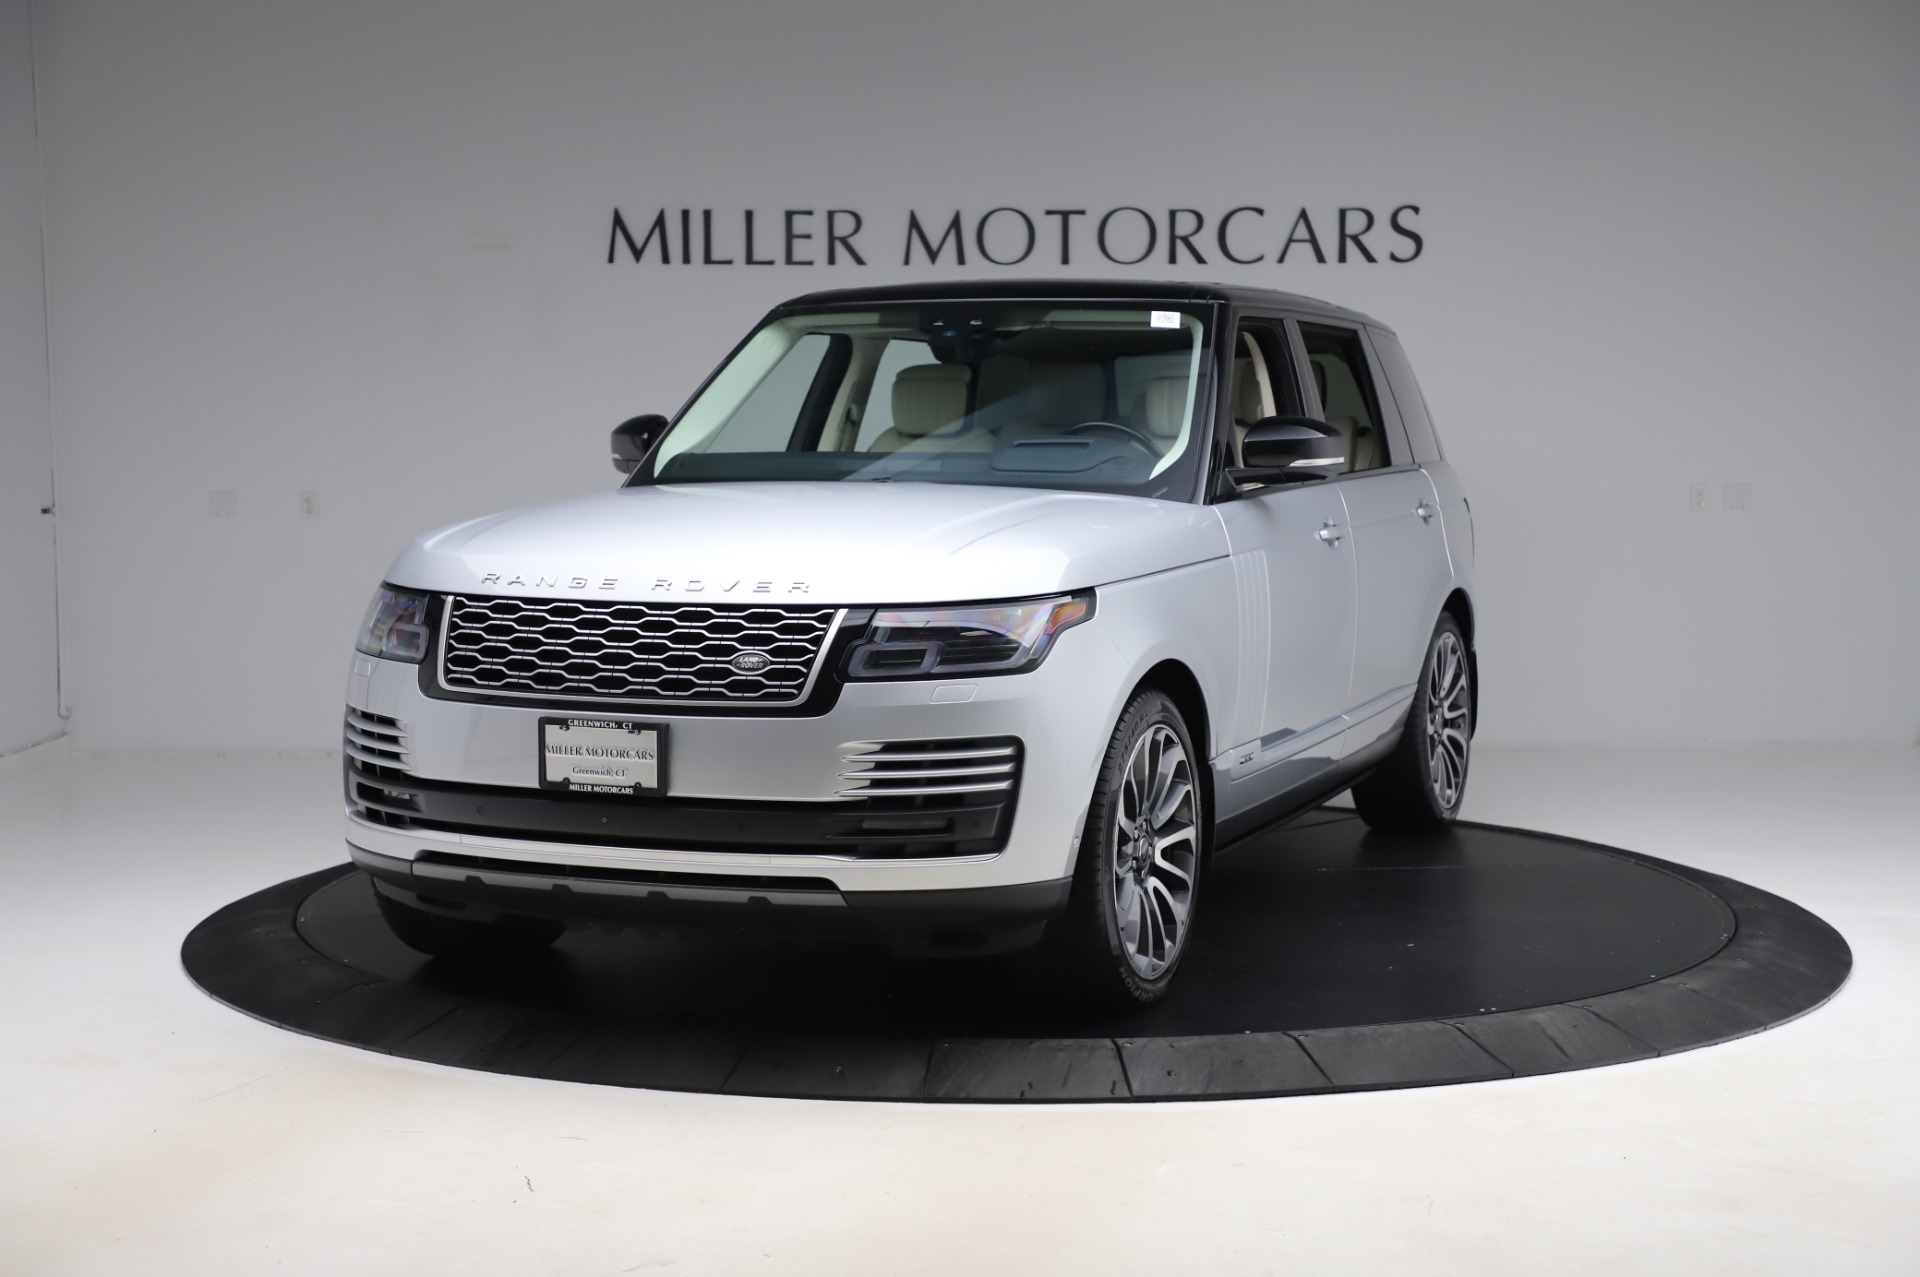 Used 2019 Land Rover Range Rover Supercharged LWB for sale Call for price at Pagani of Greenwich in Greenwich CT 06830 1